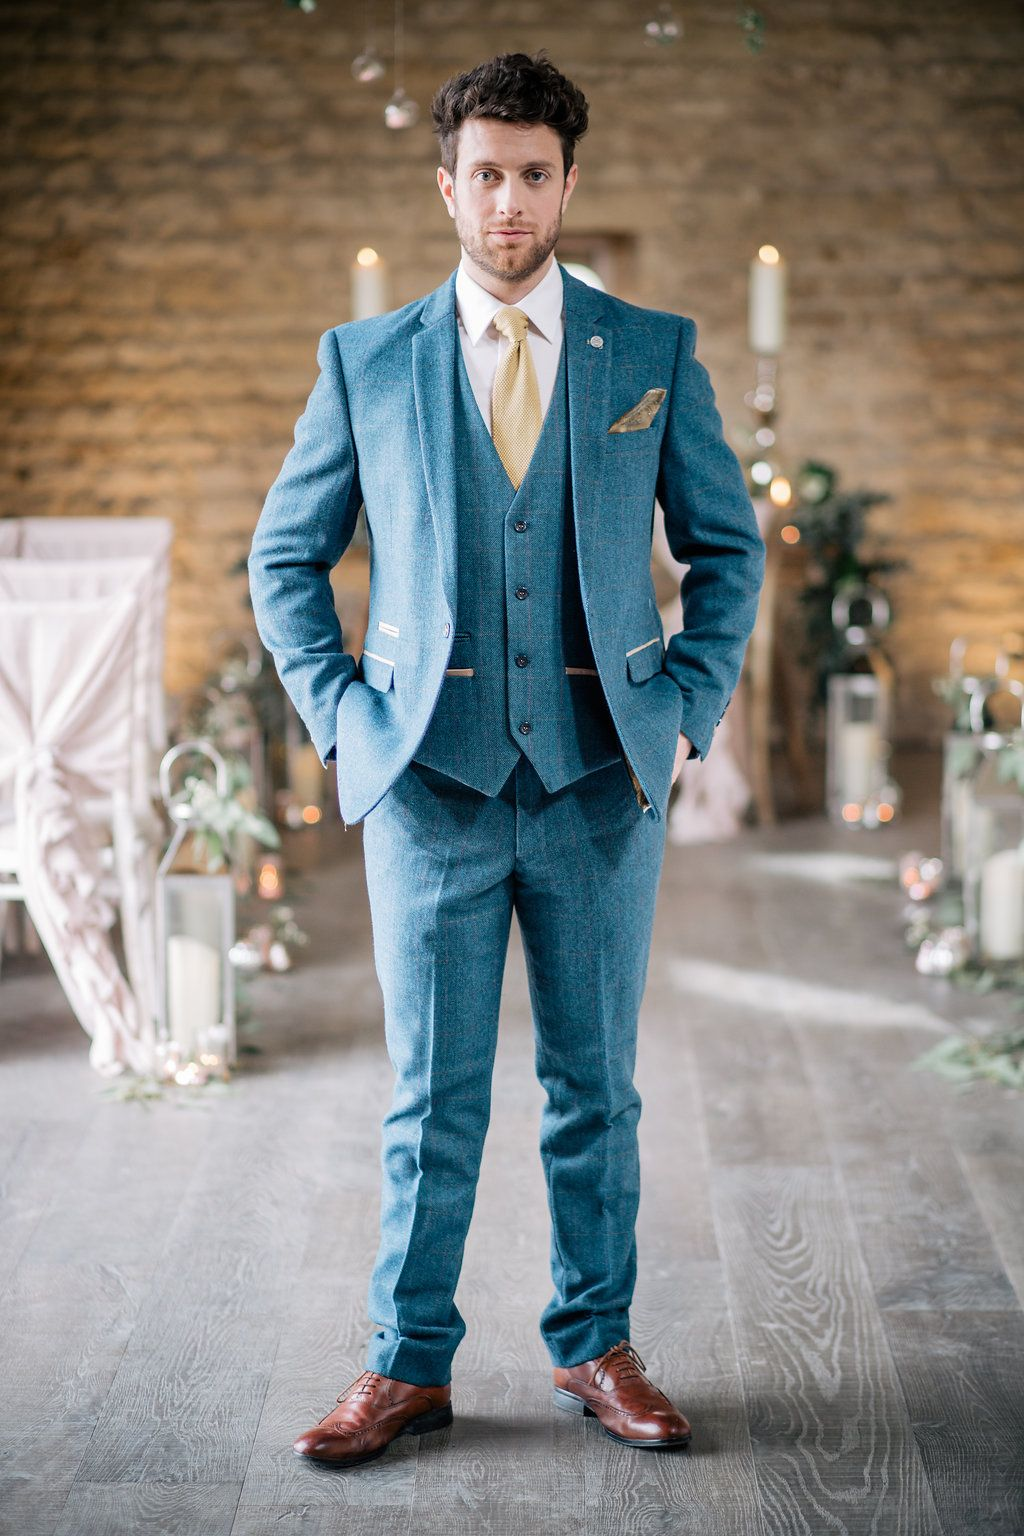 Lapstone Barn Wedding Ideas Cotswolds with Romantic & Whimsical ...